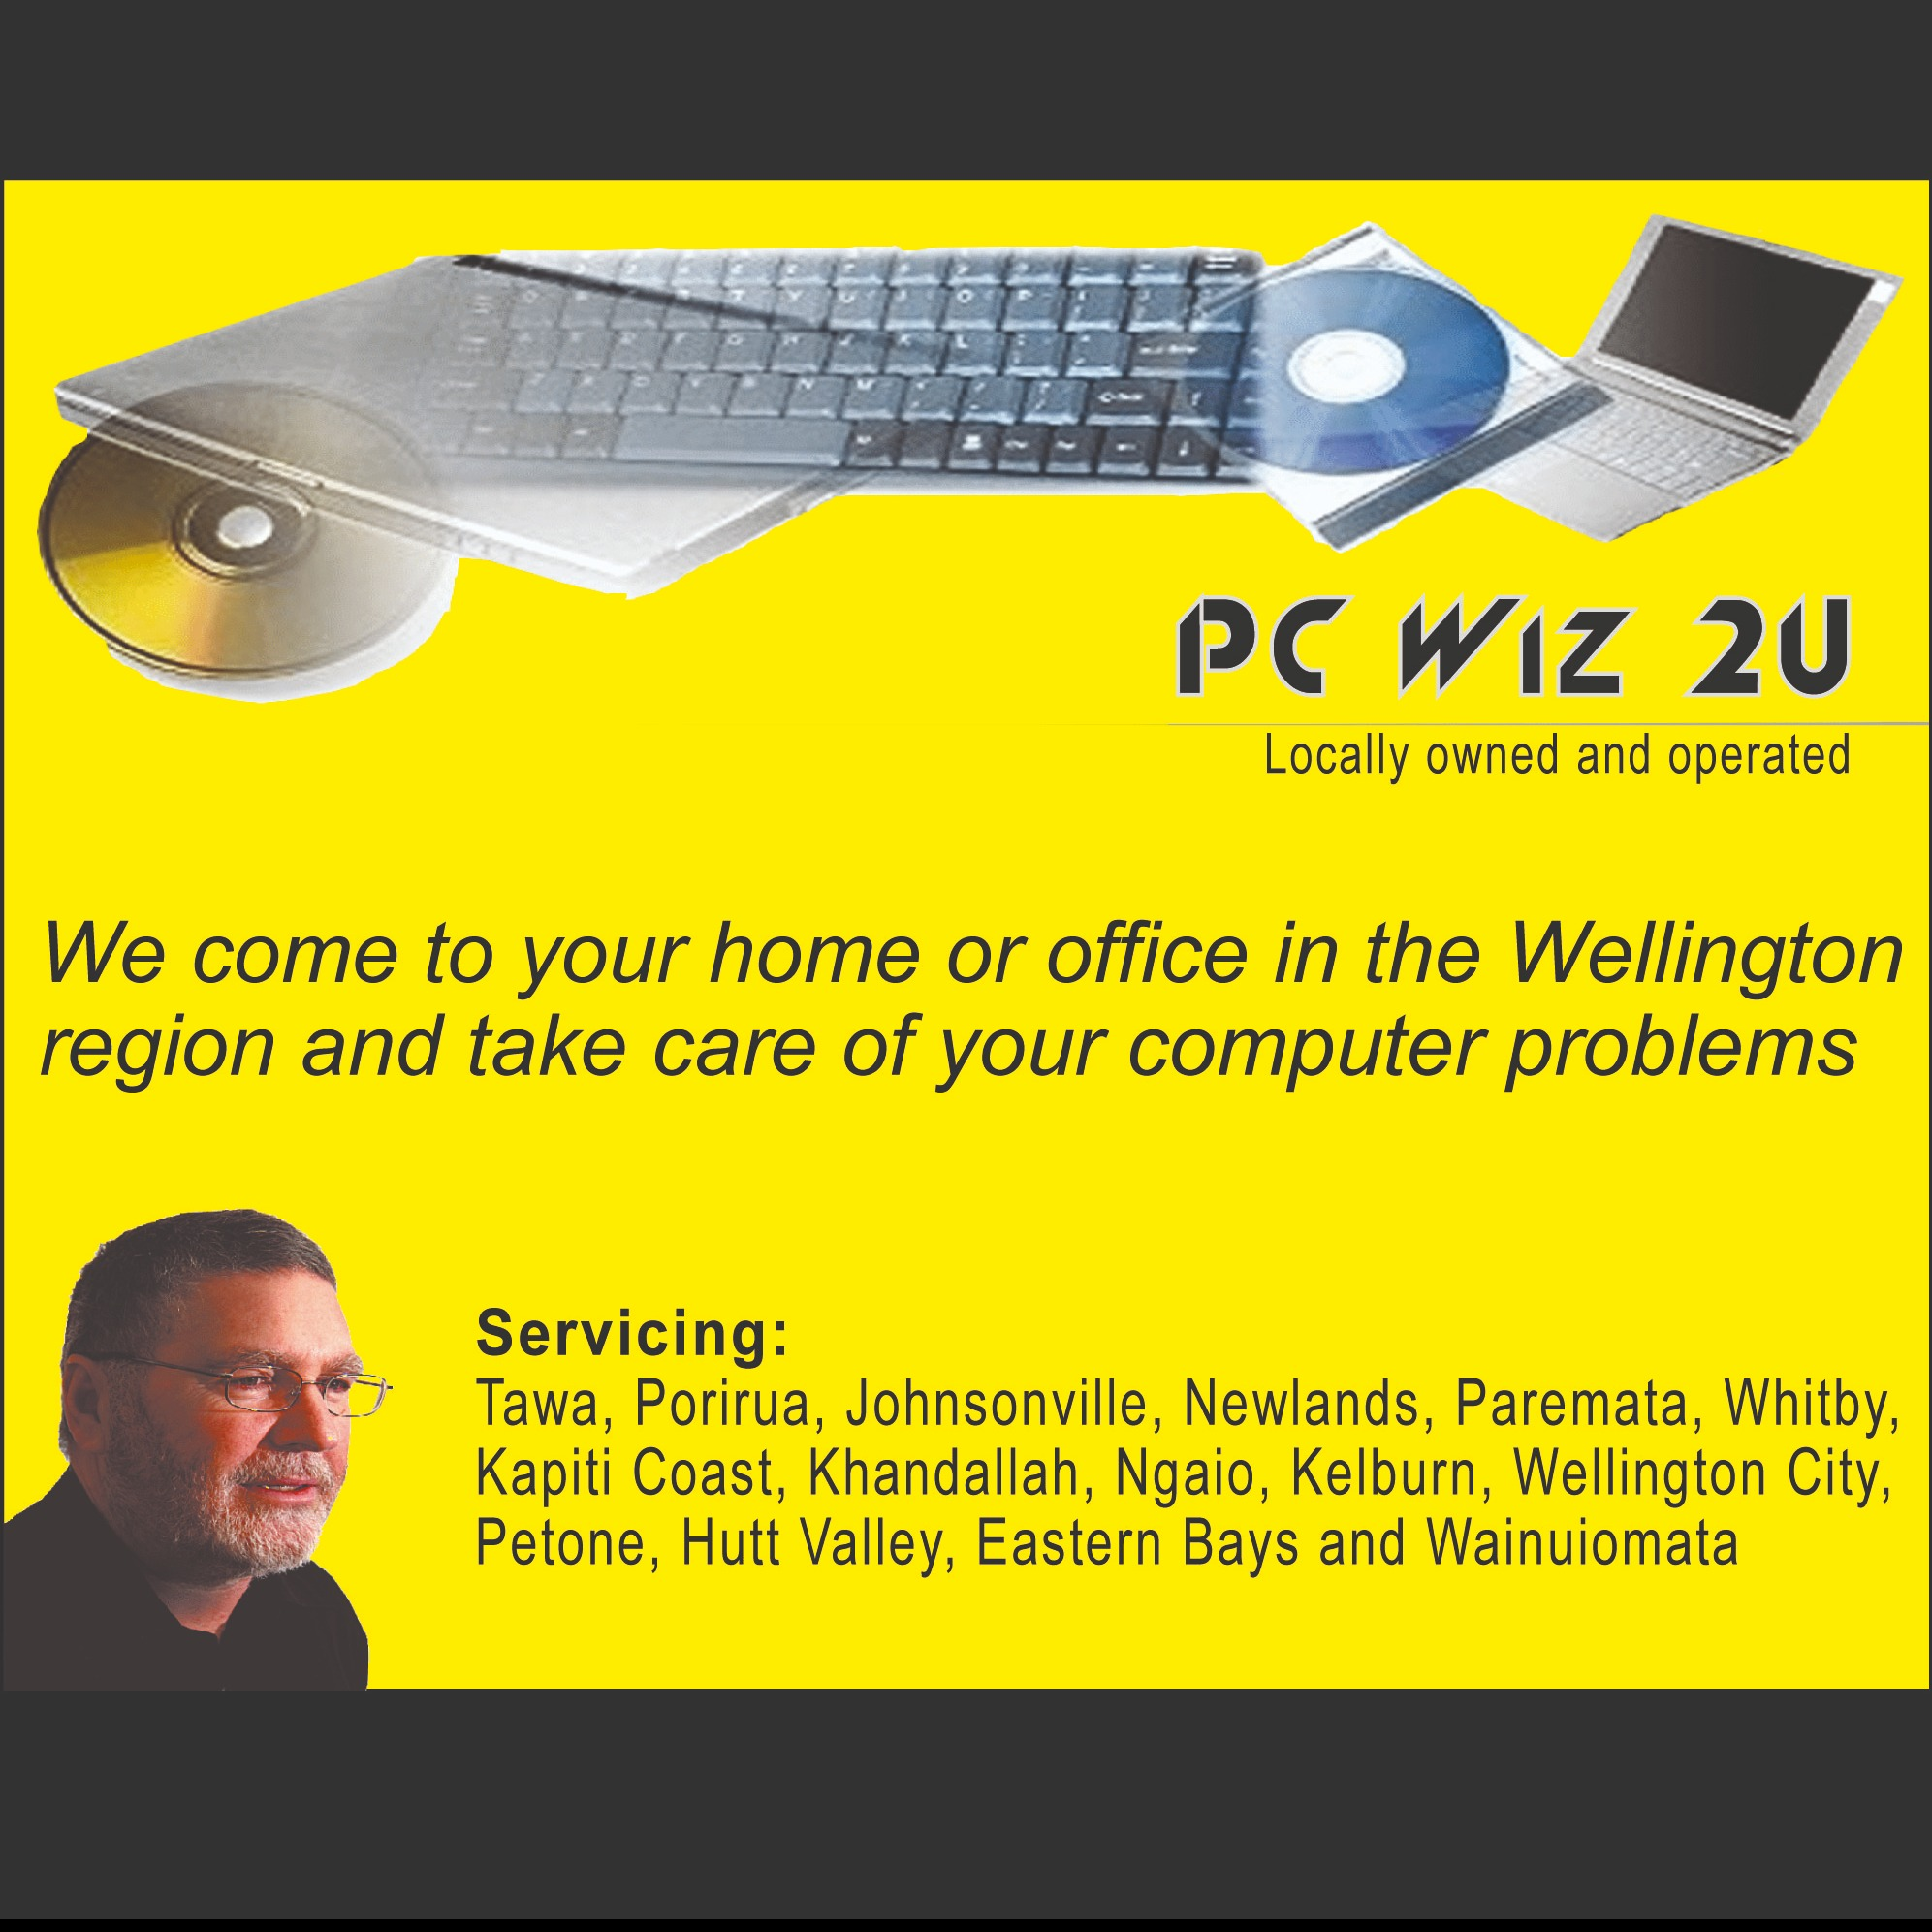 Home Calls for Computers Ltd | PC Wiz 2U Ltd